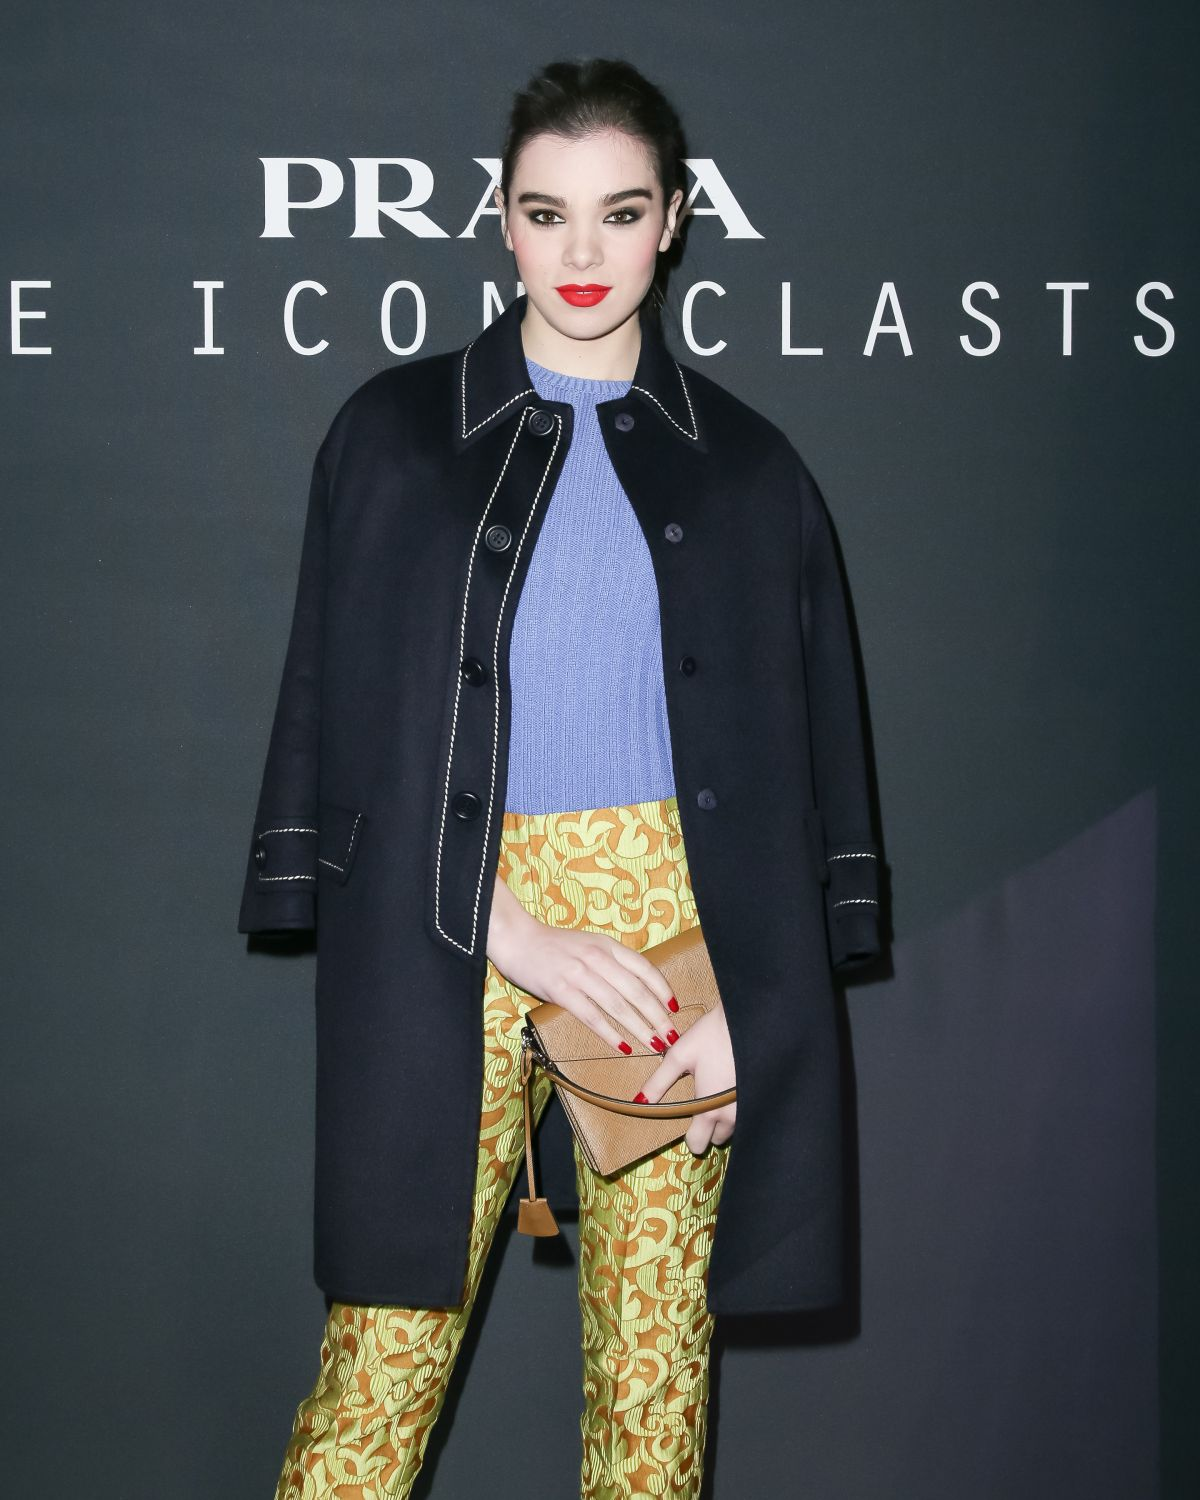 HAILEE STEINFELD at Prada Presents The Iconoclasts in New York